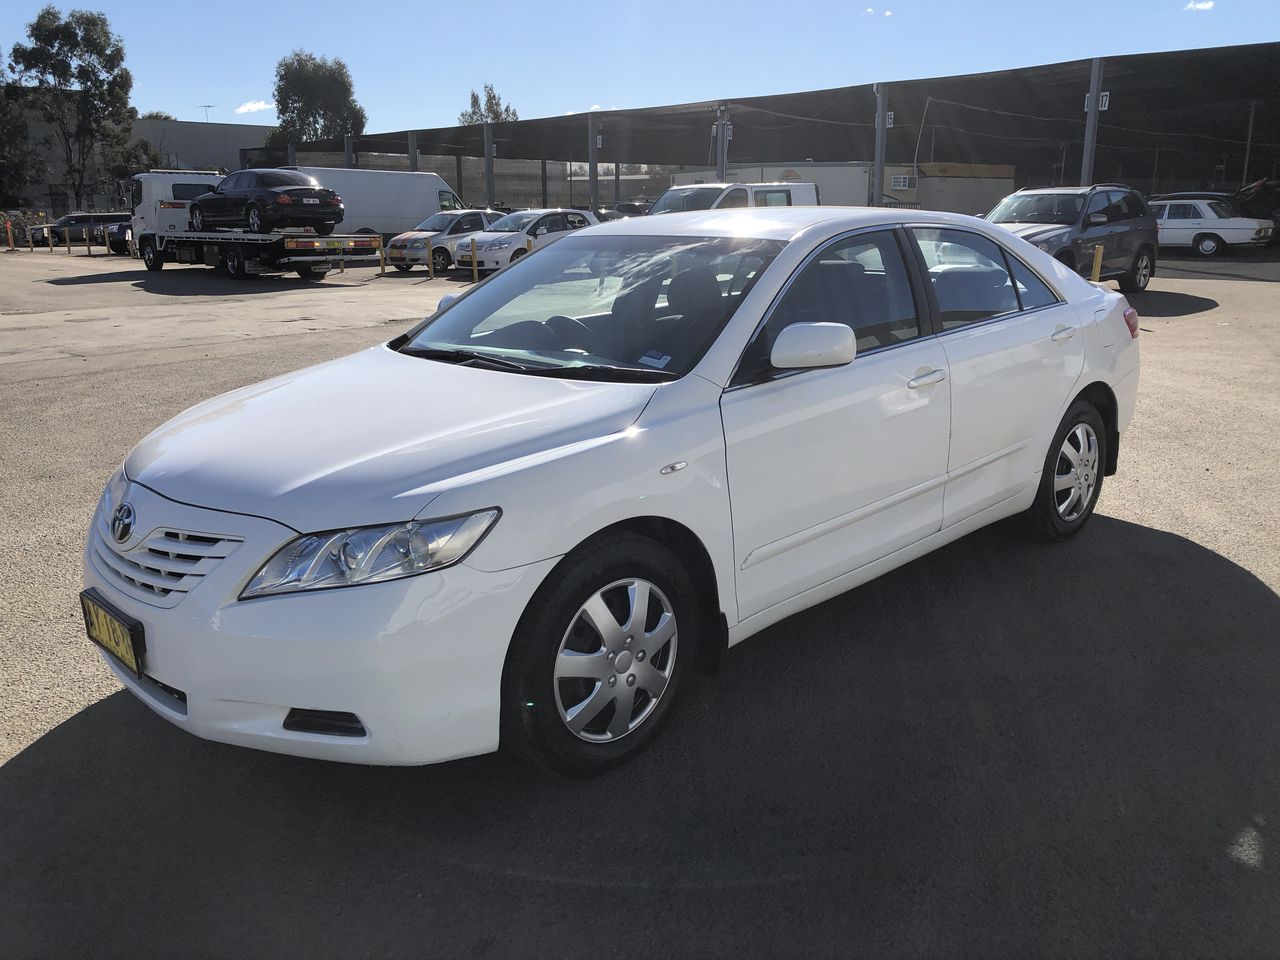 2008 Toyota Camry Altise ACV40R Automatic Sedan